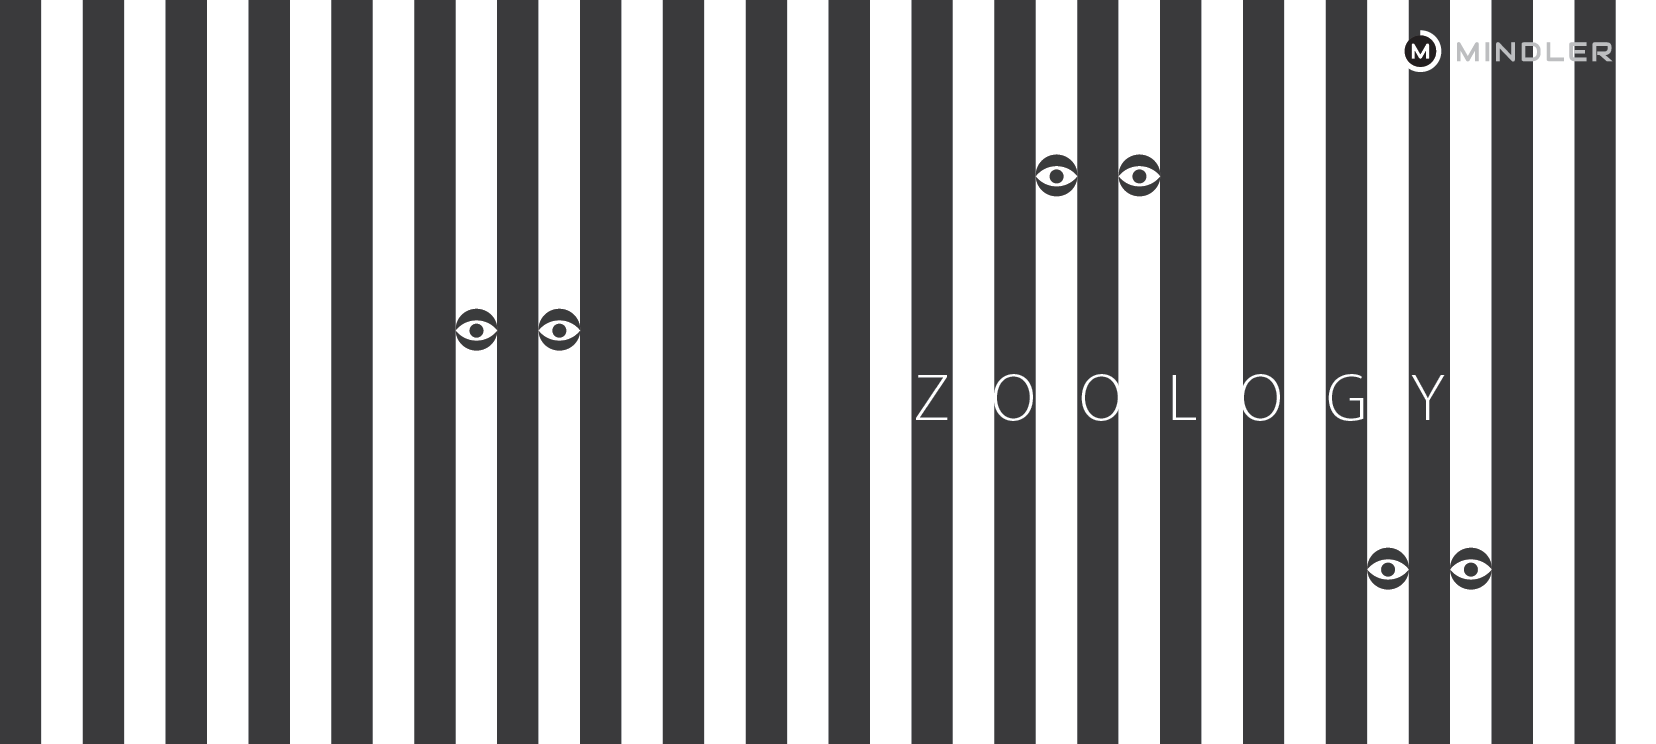 zoology-career-in-india